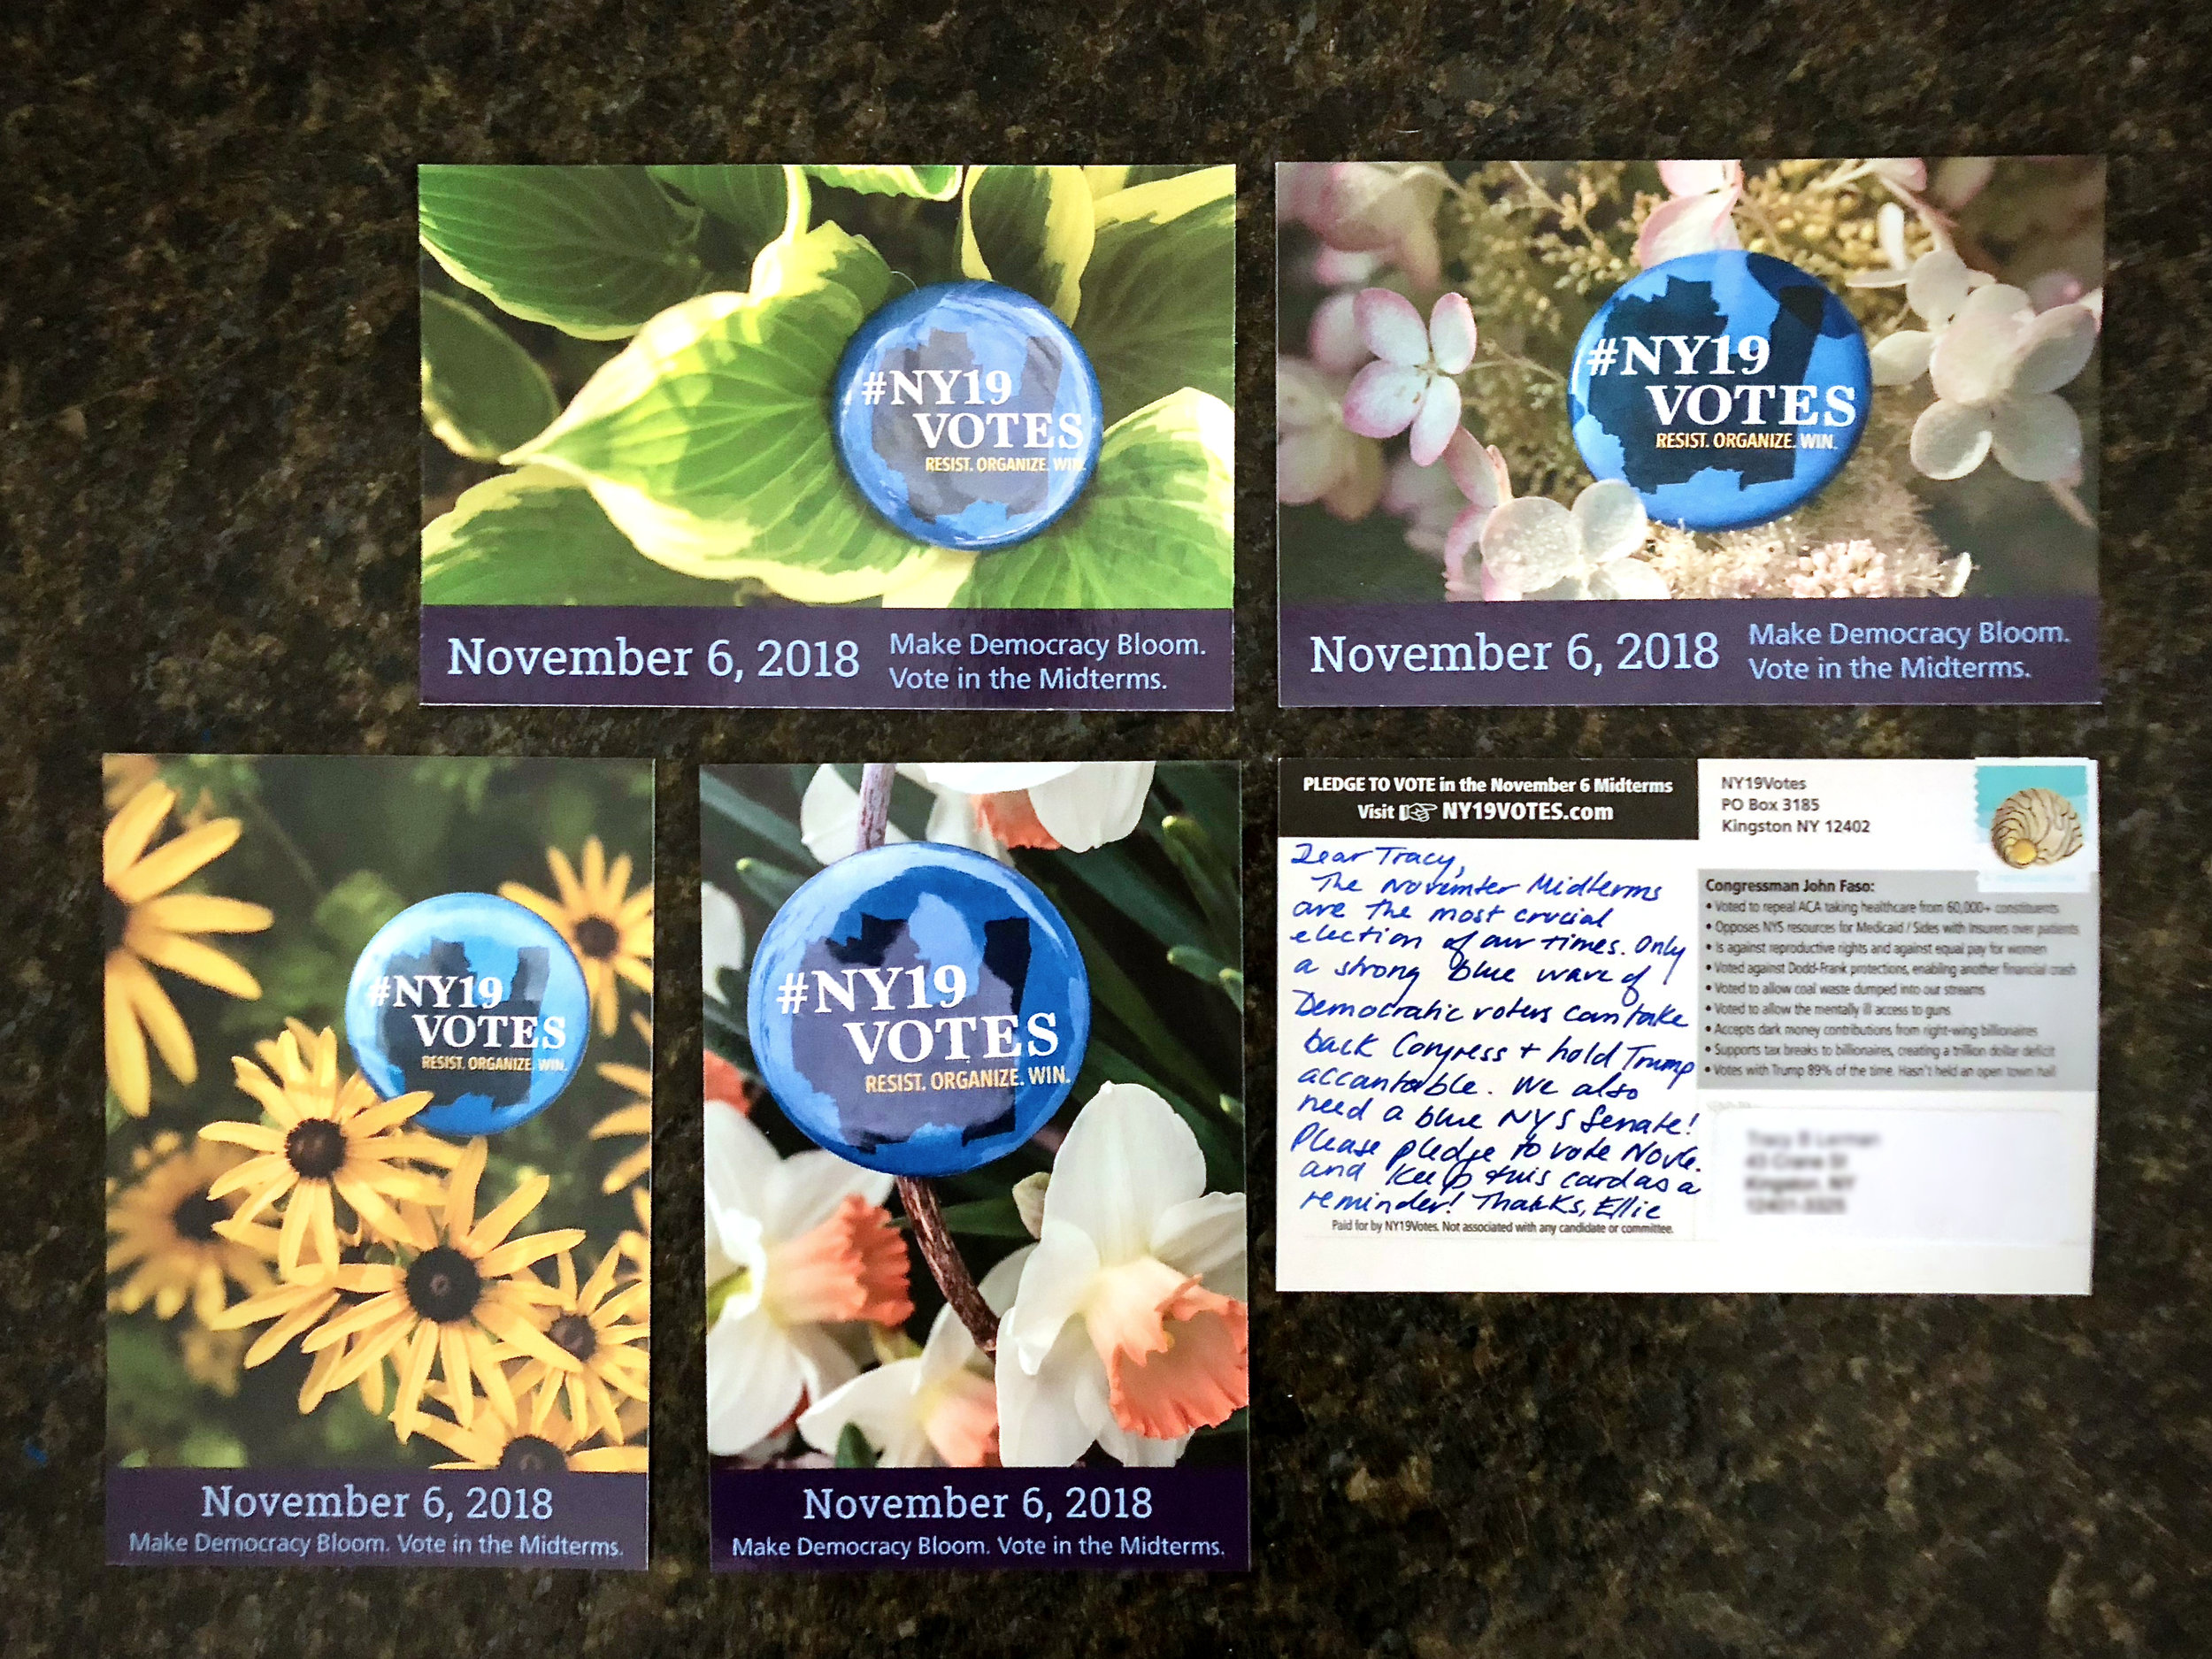 DID YOU GET A HAndwritten POSTCARD? - We need your vote this election, our future depends on it. Please let us know you will be joining us this November 6th by clicking on the Pledge to vote button.